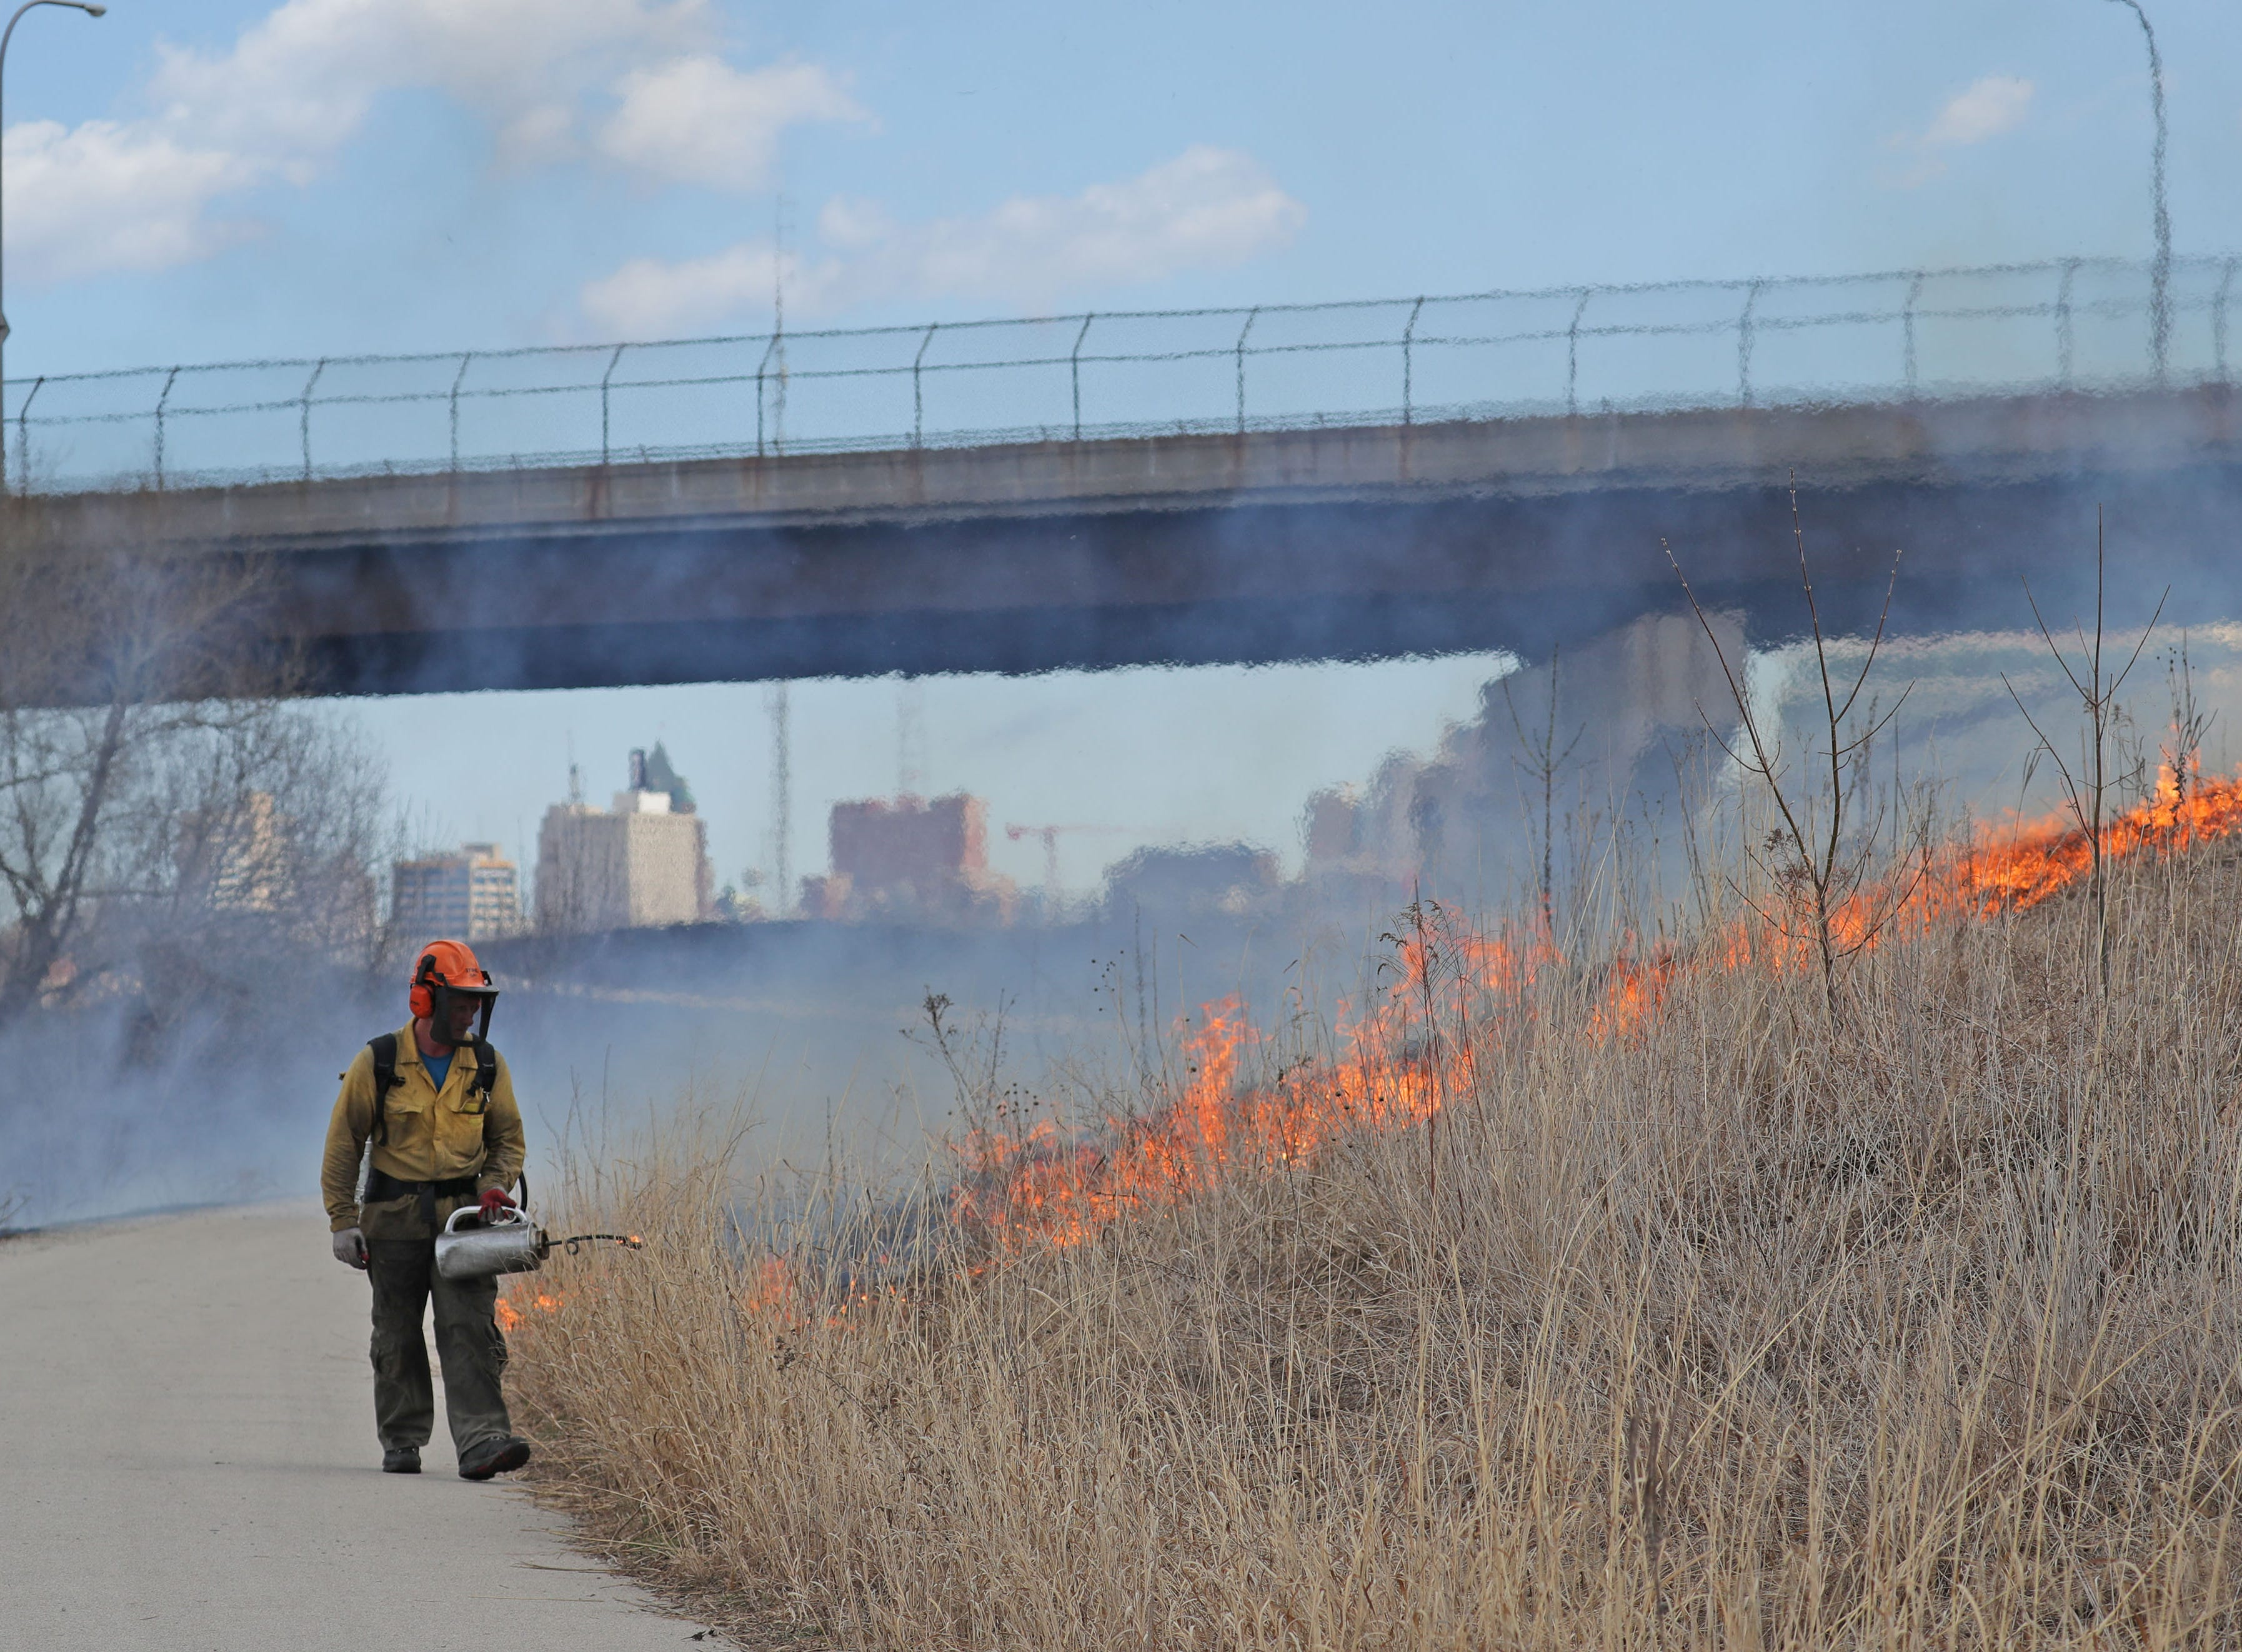 Chris Mann of  Kettle Moraine Land Stewards uses a drip torch to conduct the controlled burn.